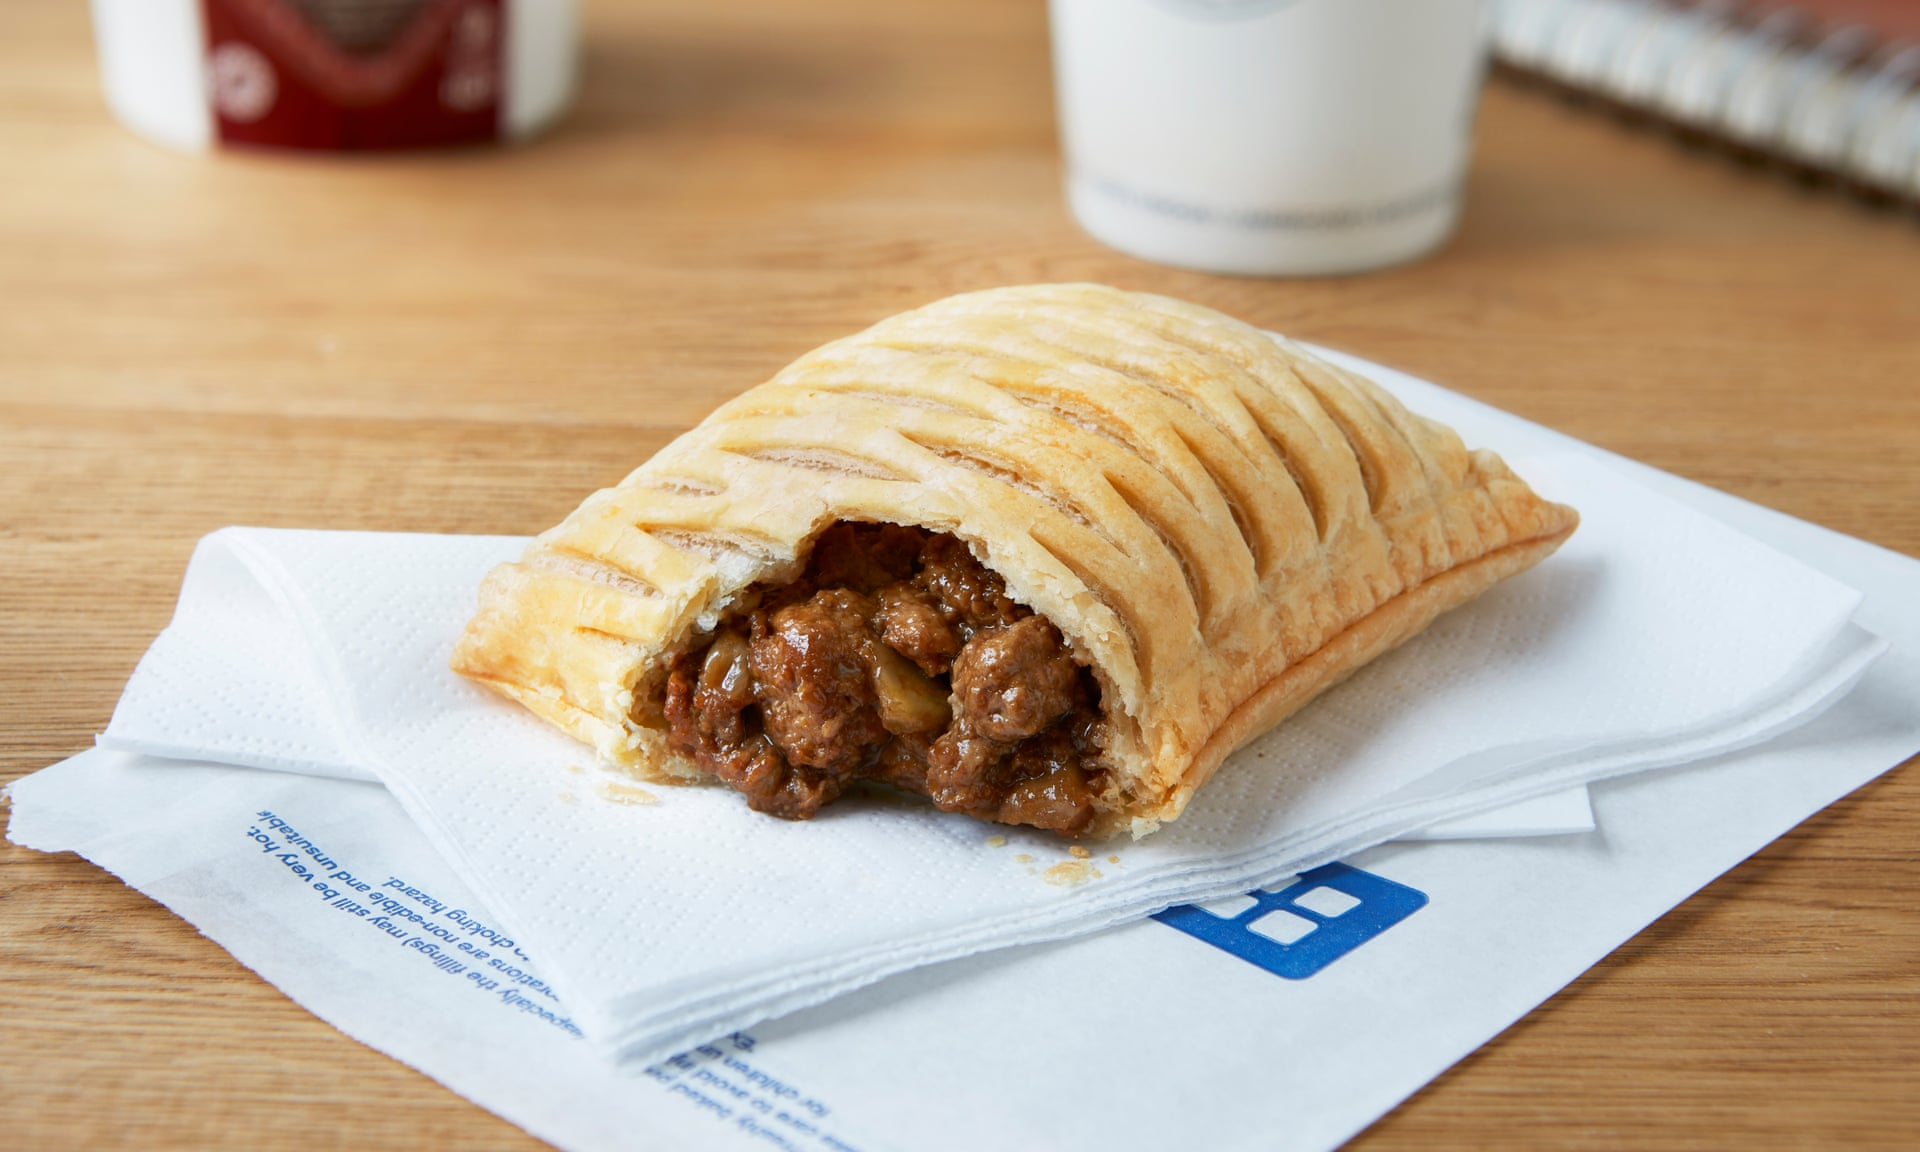 Greggs is launching a vegan steak bake in 1,300 stores today